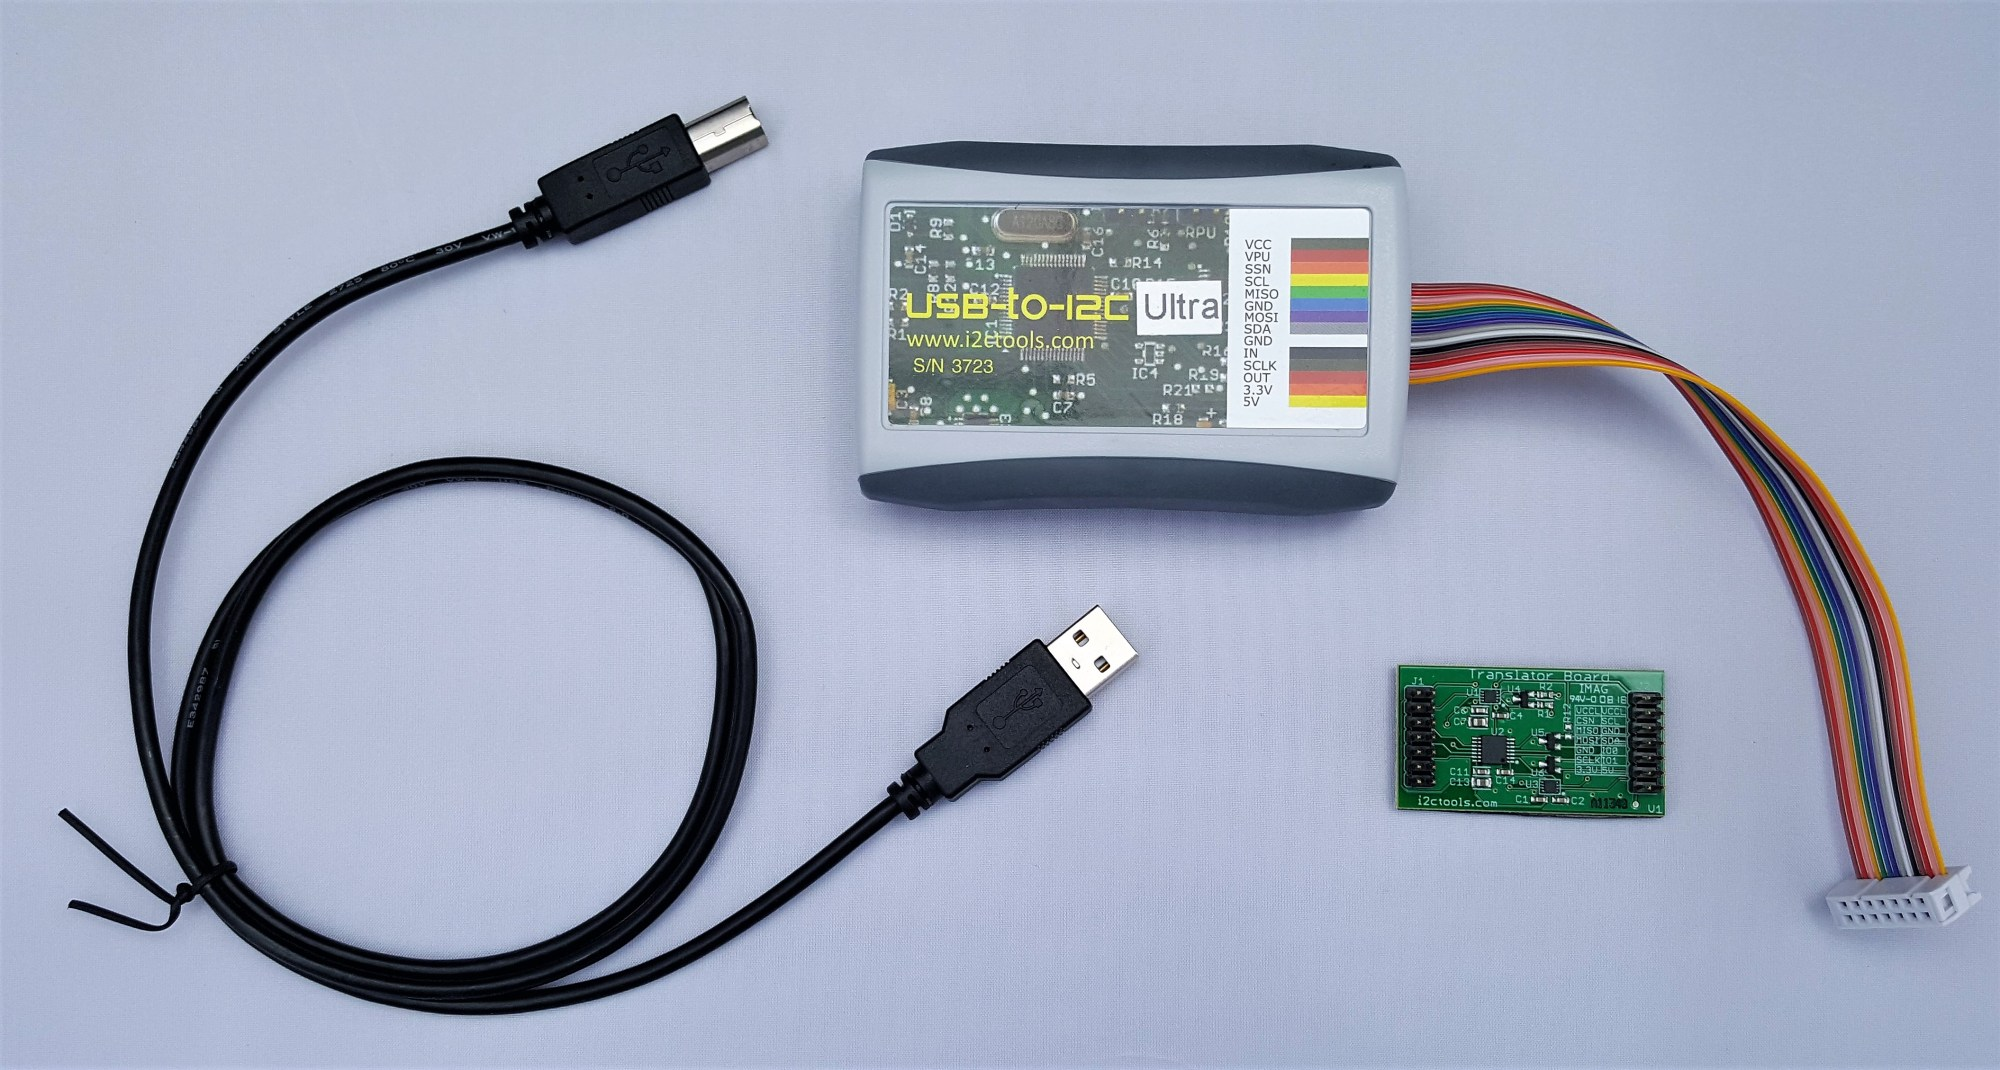 hight resolution of usb to i2c ultra